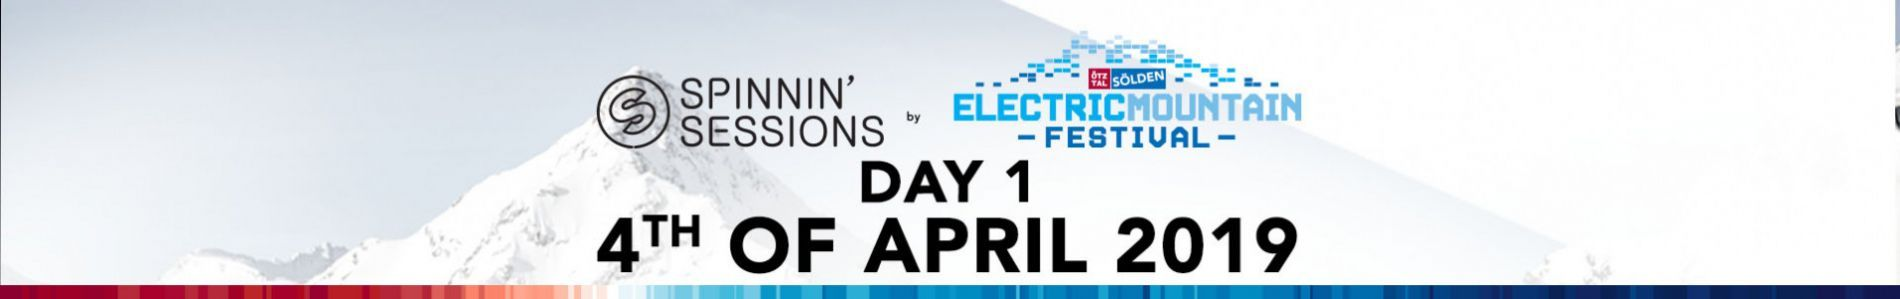 Spinnin' Sessions Spinnin' Sessions | Electric Mountain Festival